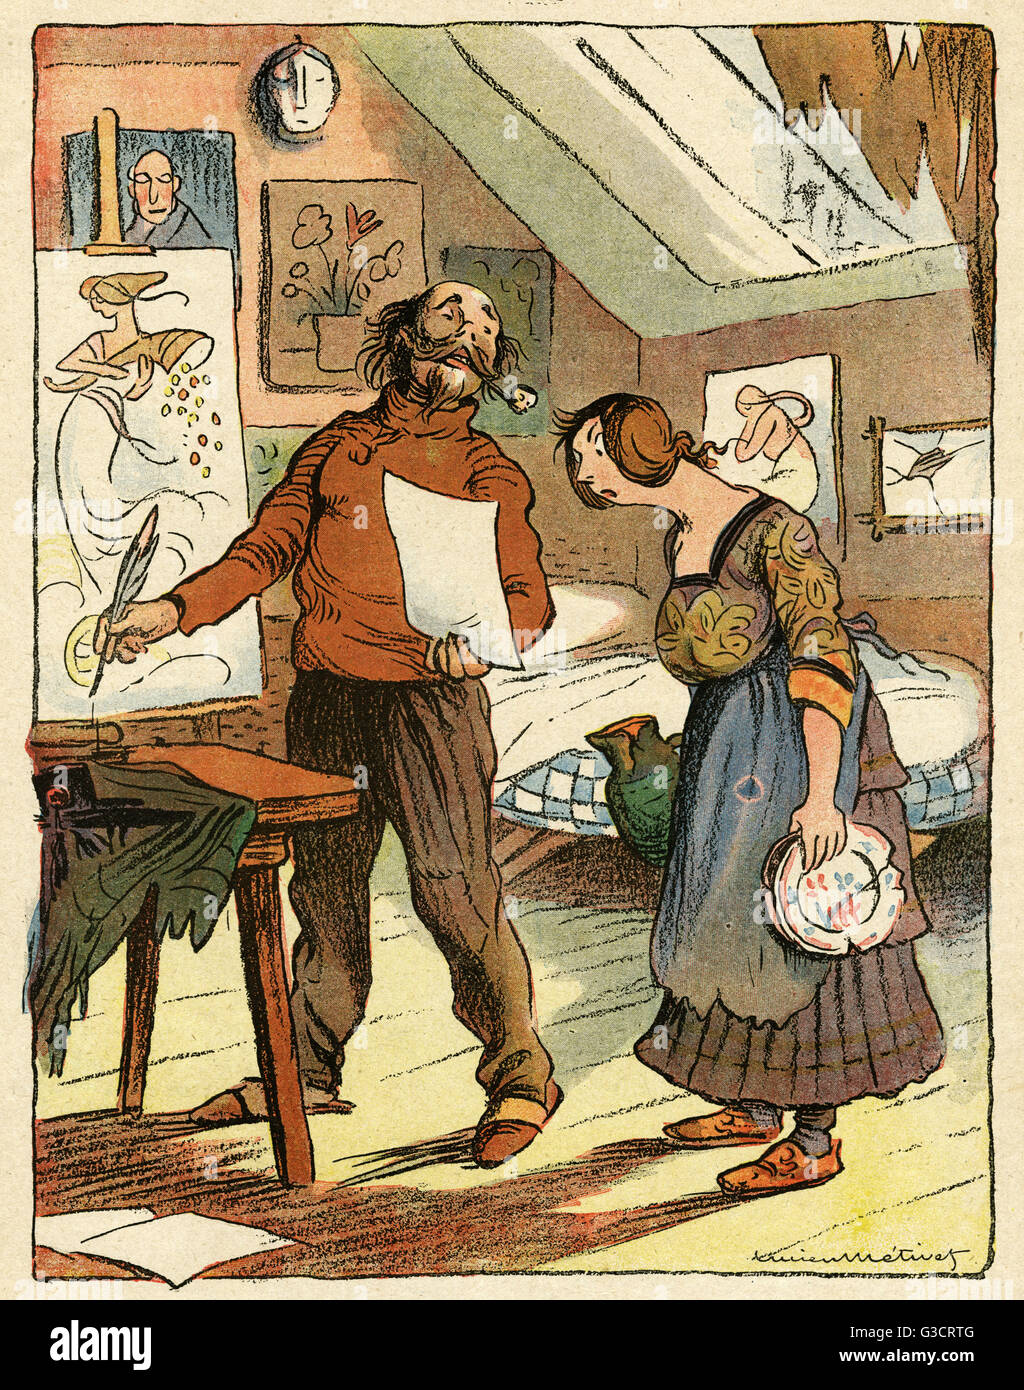 Cartoon, Artistic dignity.  A poor painter in an attic room tells his wife that he told the taxman he earned five - Stock Image